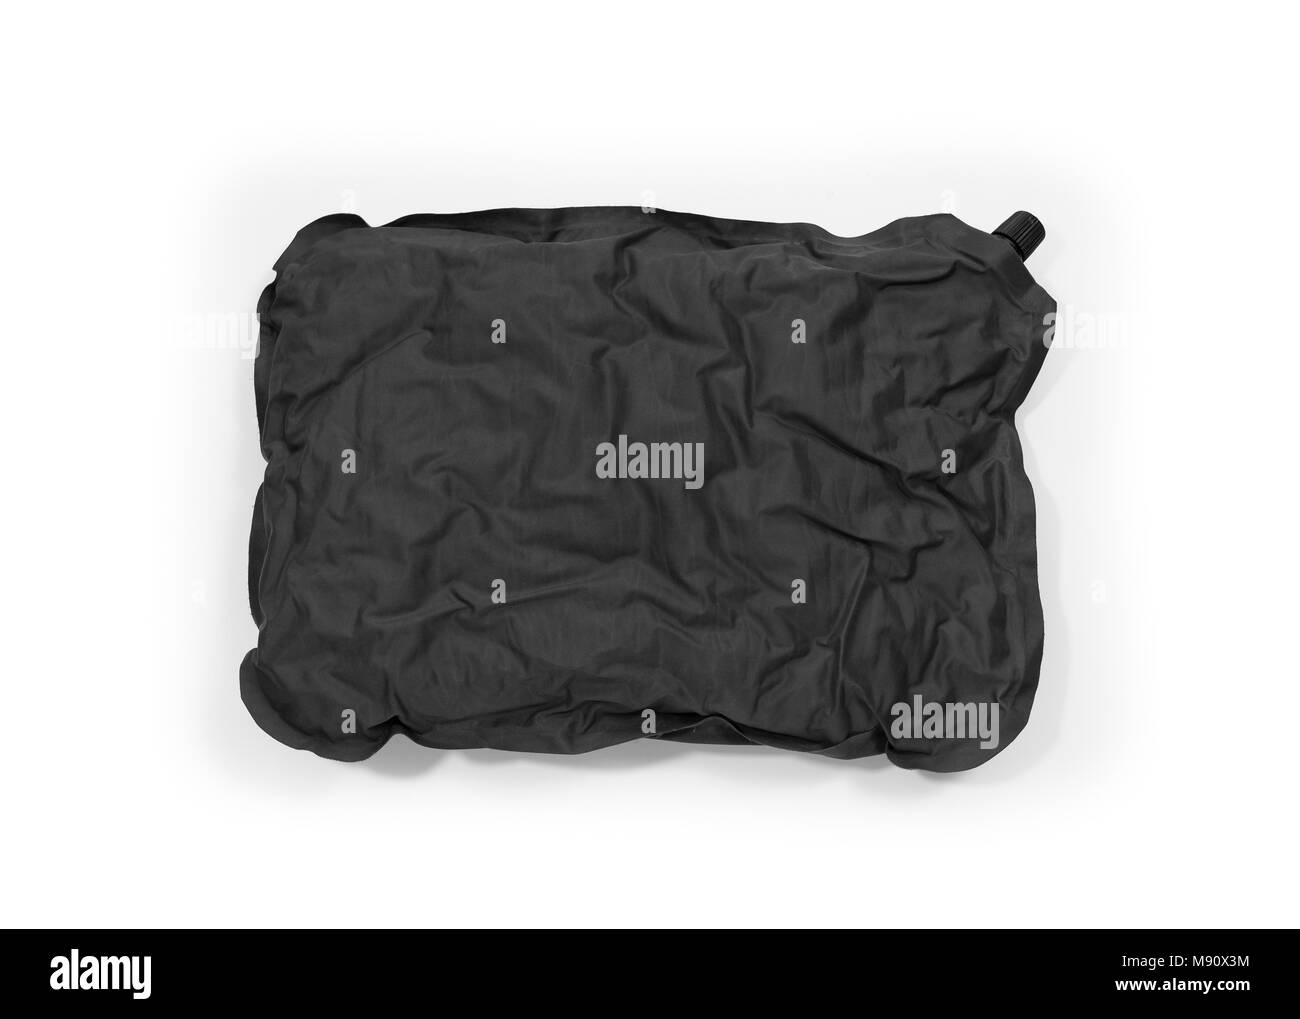 Self Inflating Matras : Self inflating stock photos self inflating stock images alamy